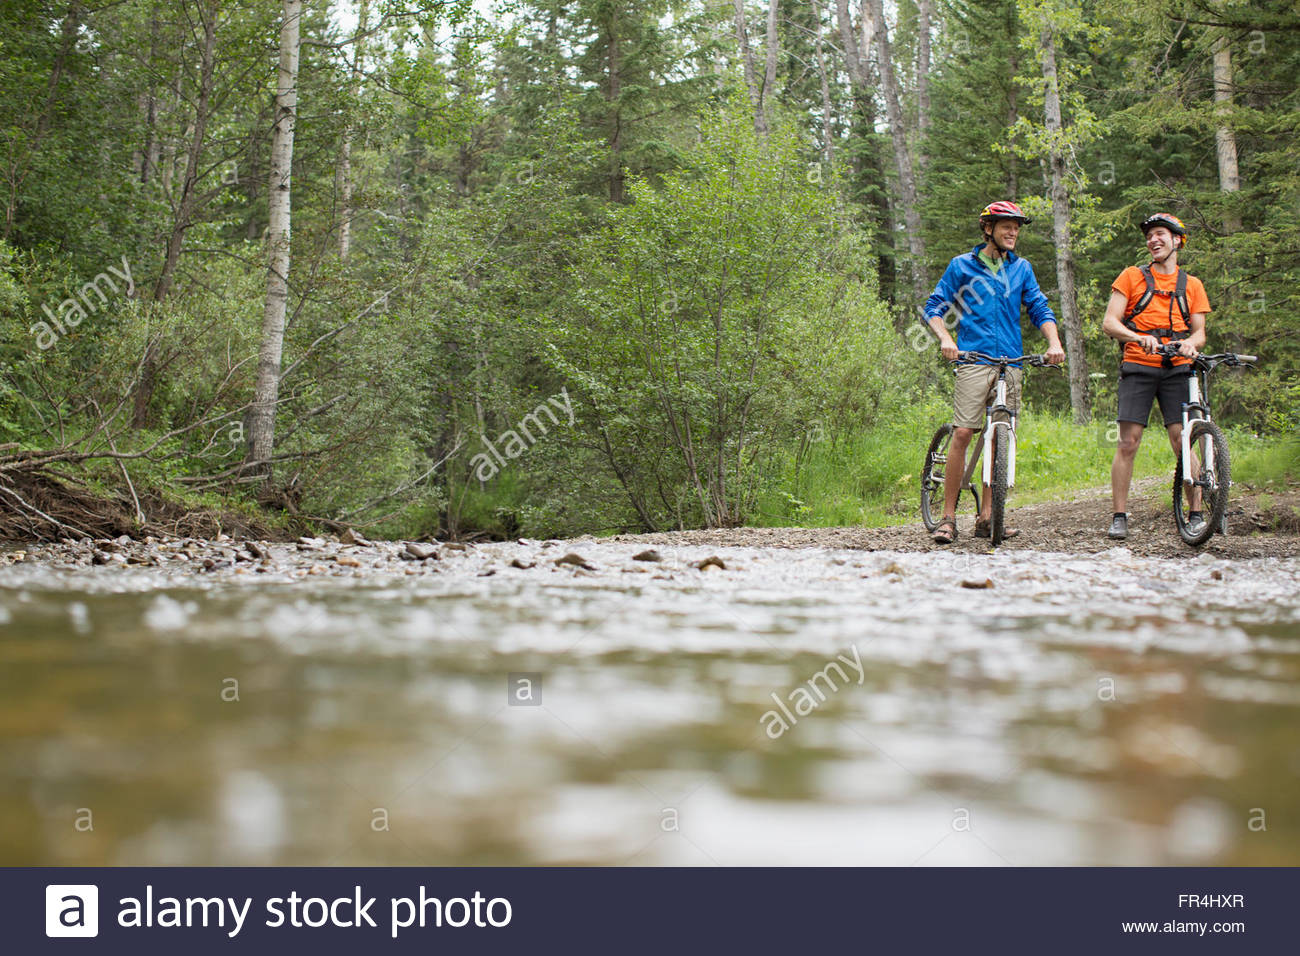 two male mountain bikers pauding by a stream in the woods - Stock Image